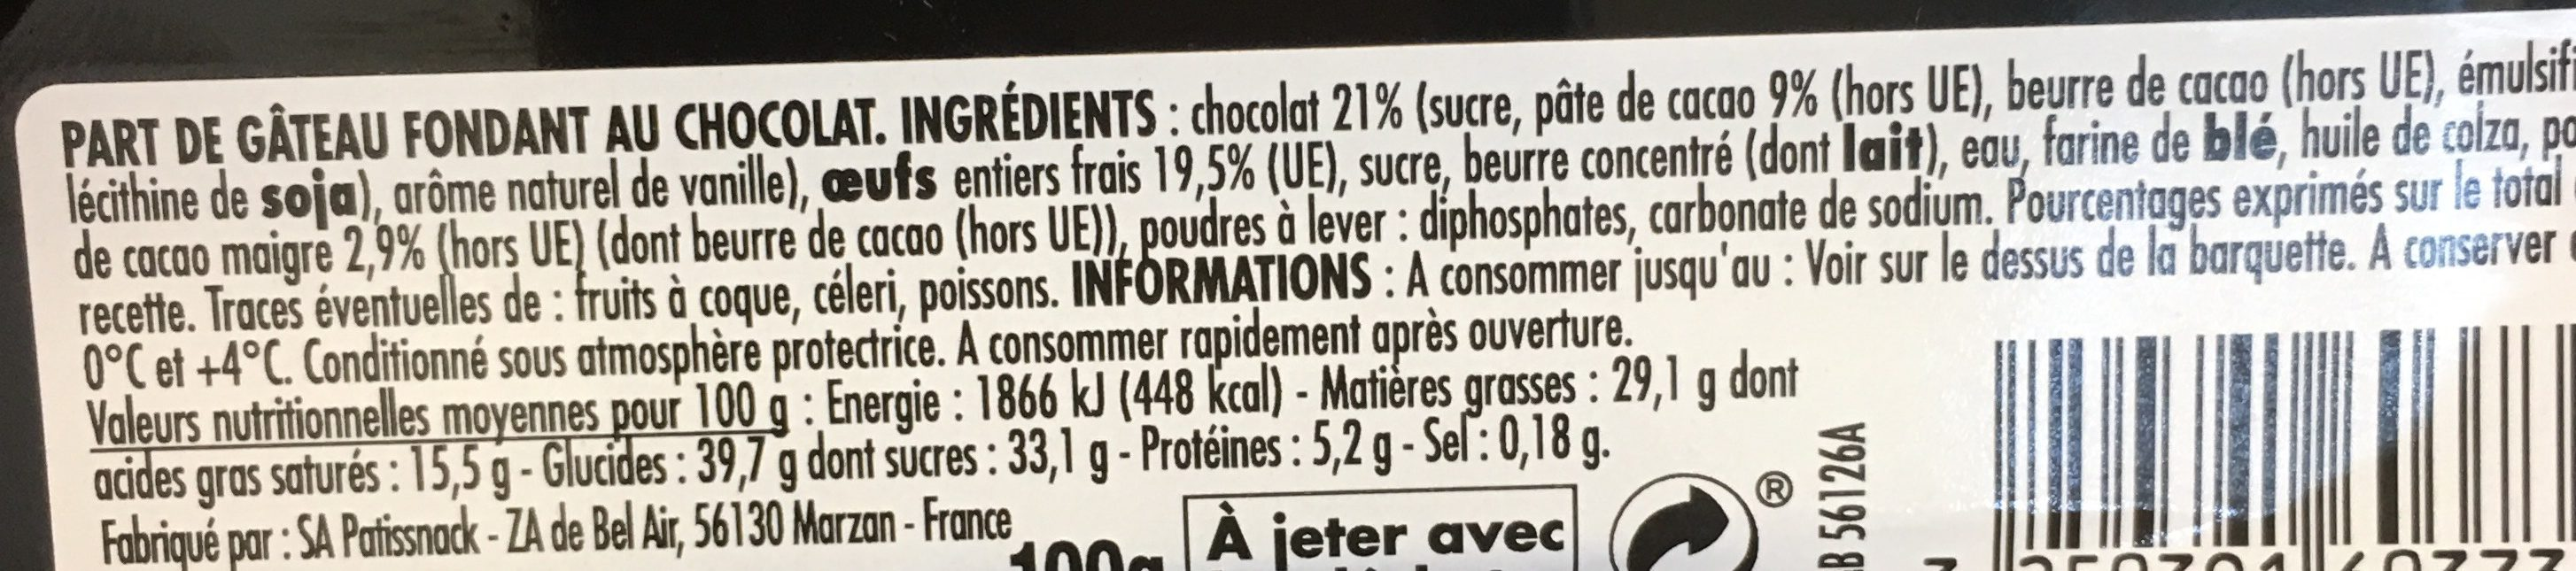 Fondant au Chocolat (78g) - Ingredients